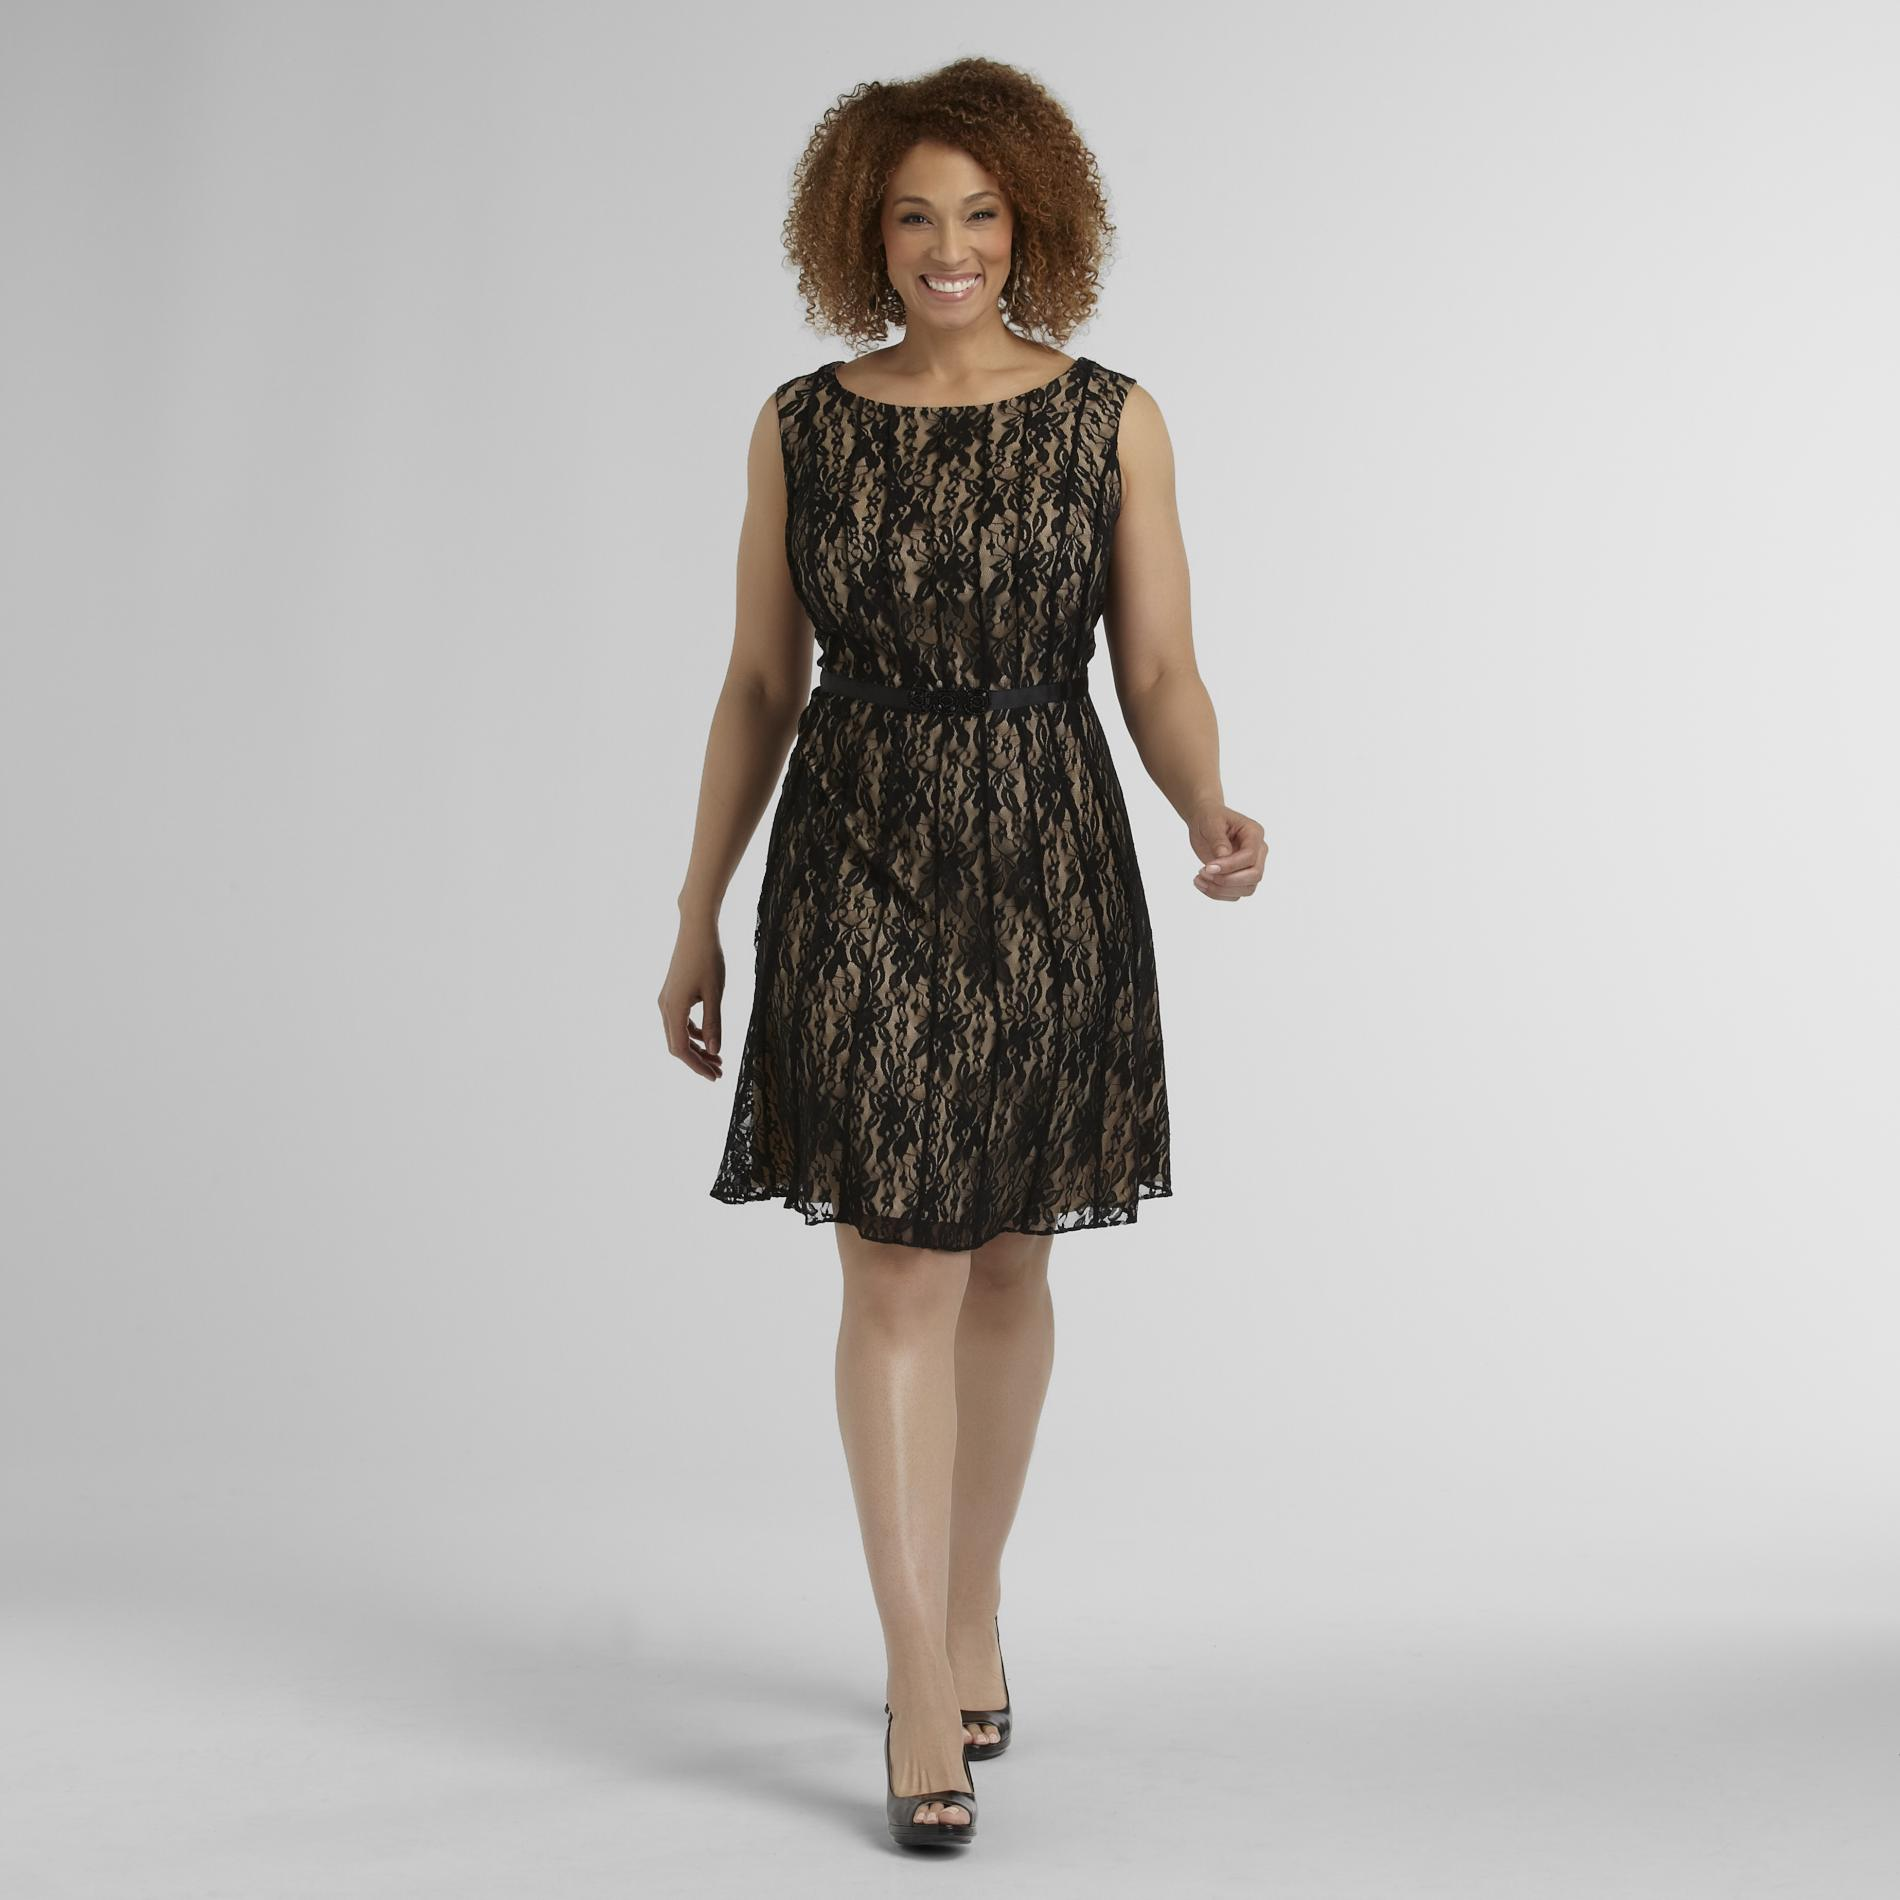 Women's Plus Sleeveless Lace Dress at Sears.com